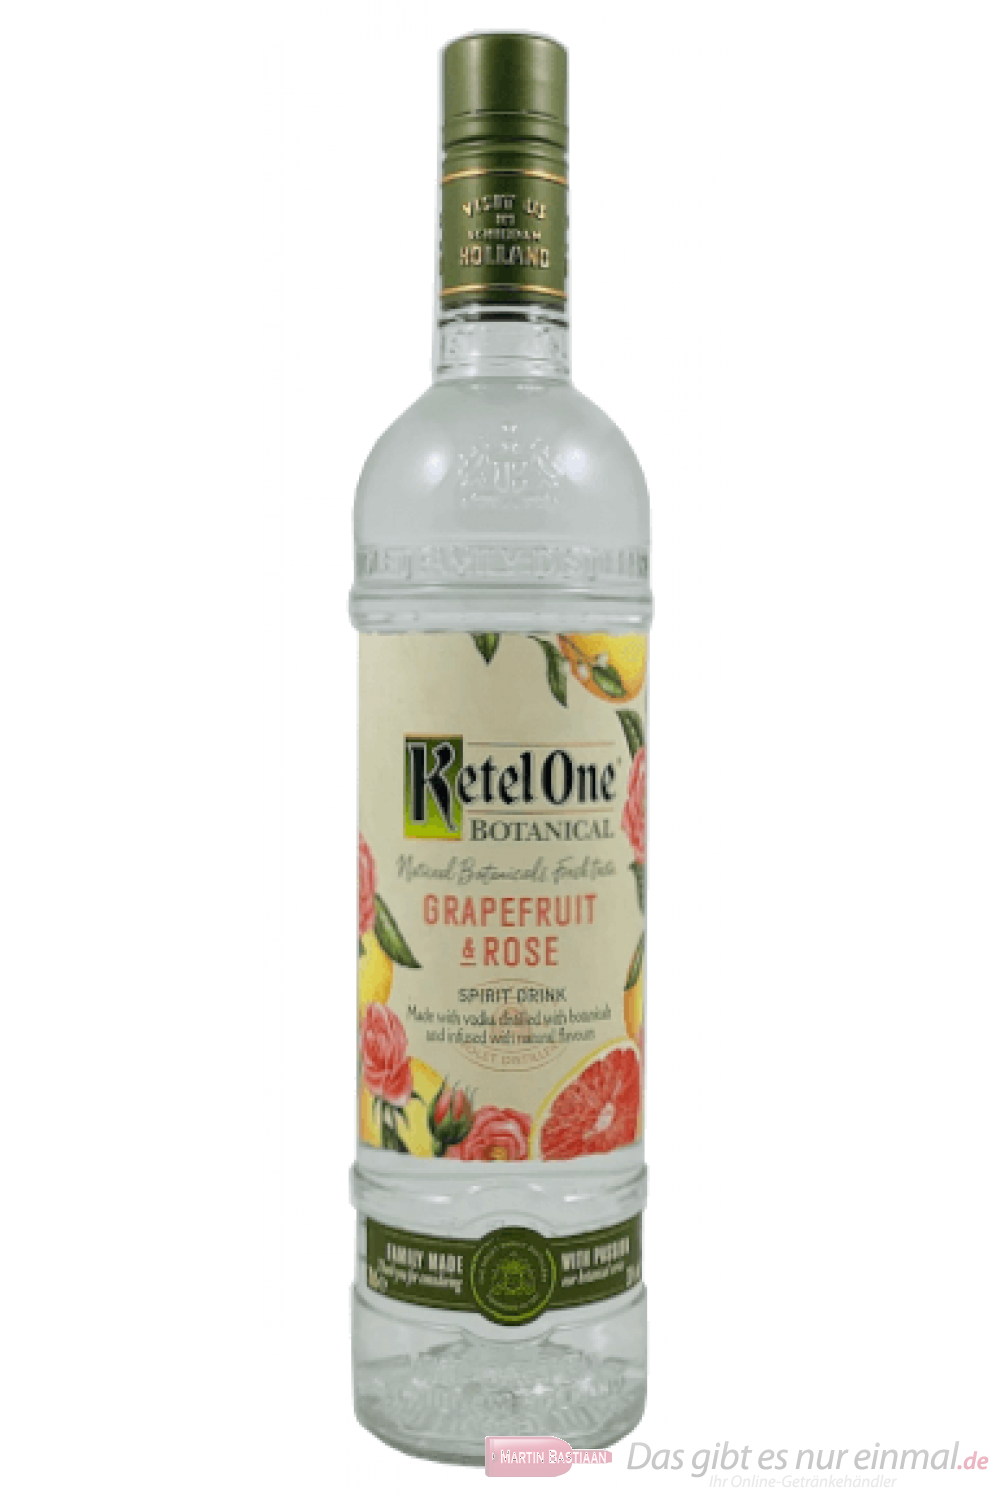 Ketel One Botanicals Grapefruit & Rose 0,7l